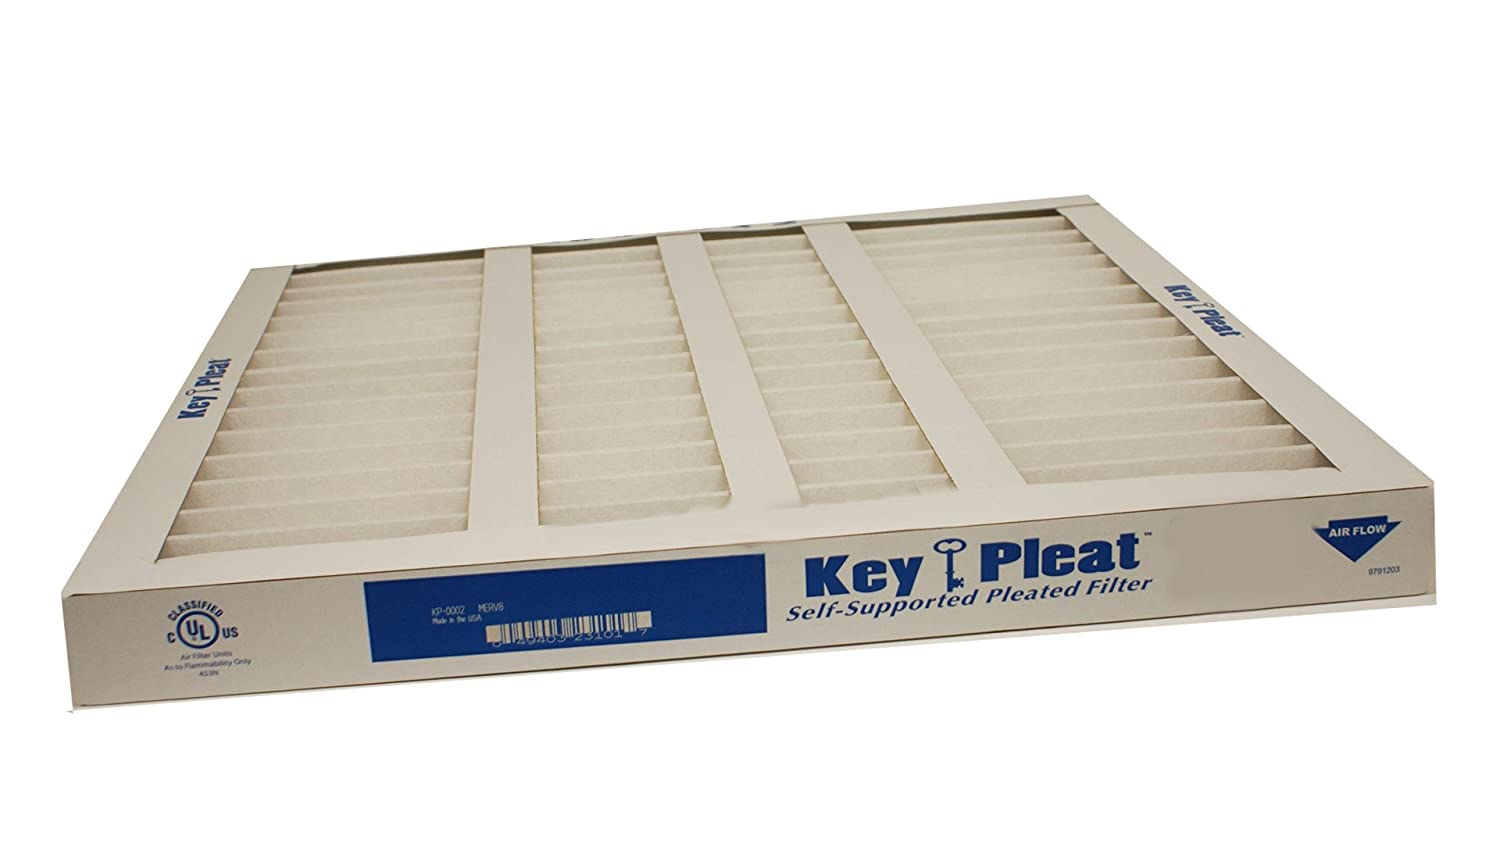 KP-5251106261x1 Purolator Key Pleat Extended Surface Pleated Air Filter Sterling Seal and Supply STCC 20 W x 30 H x 2 D 20 W x 30 H x 2 D Mechanical MERV 8